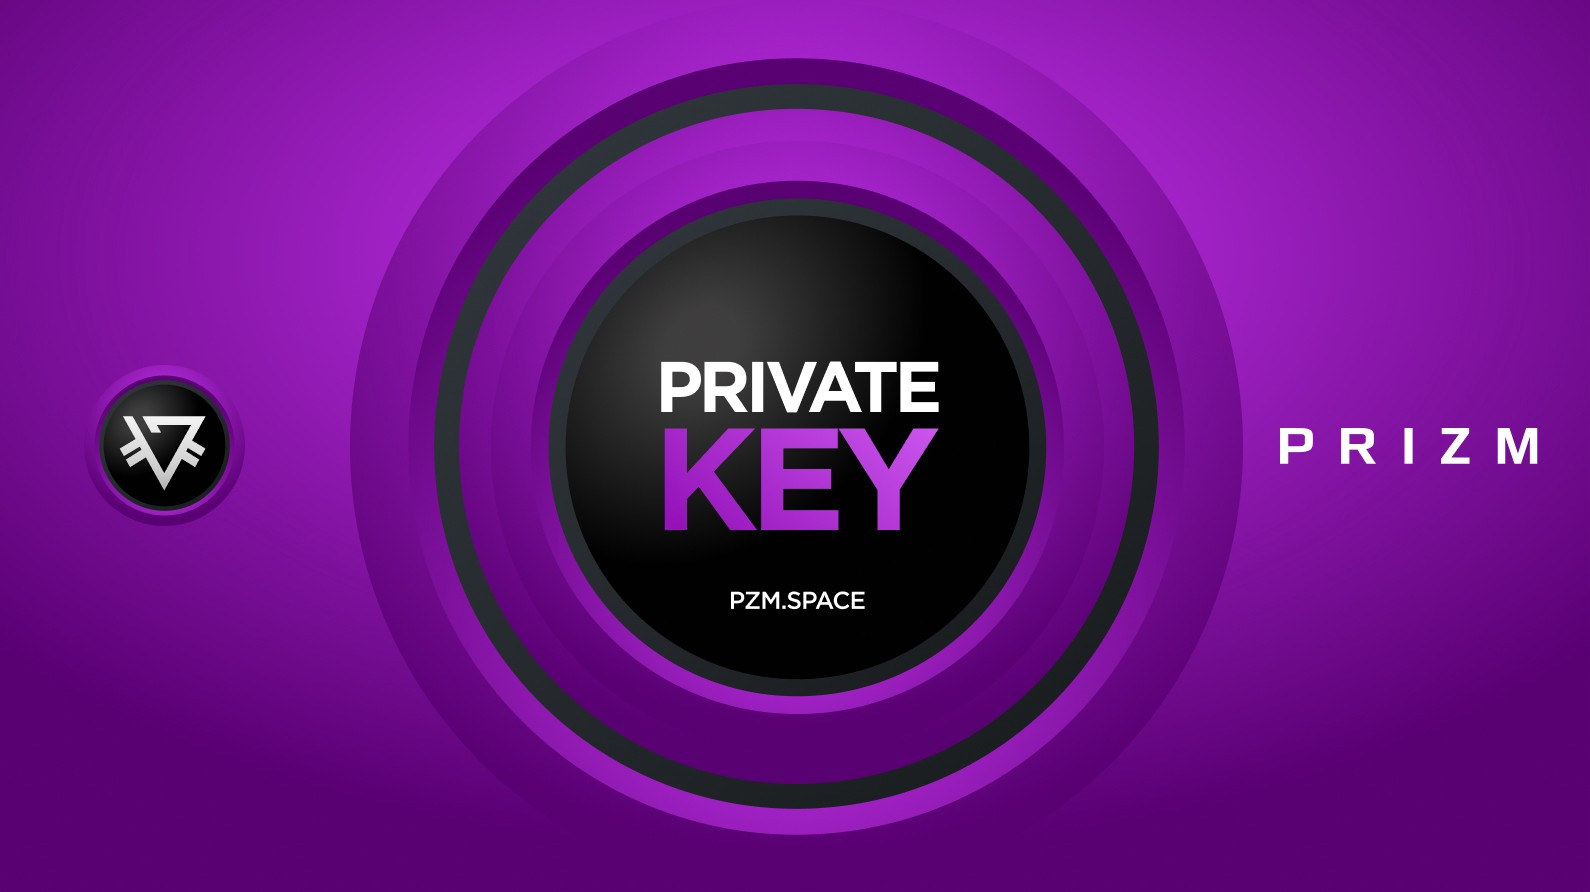 Prizm Private Key